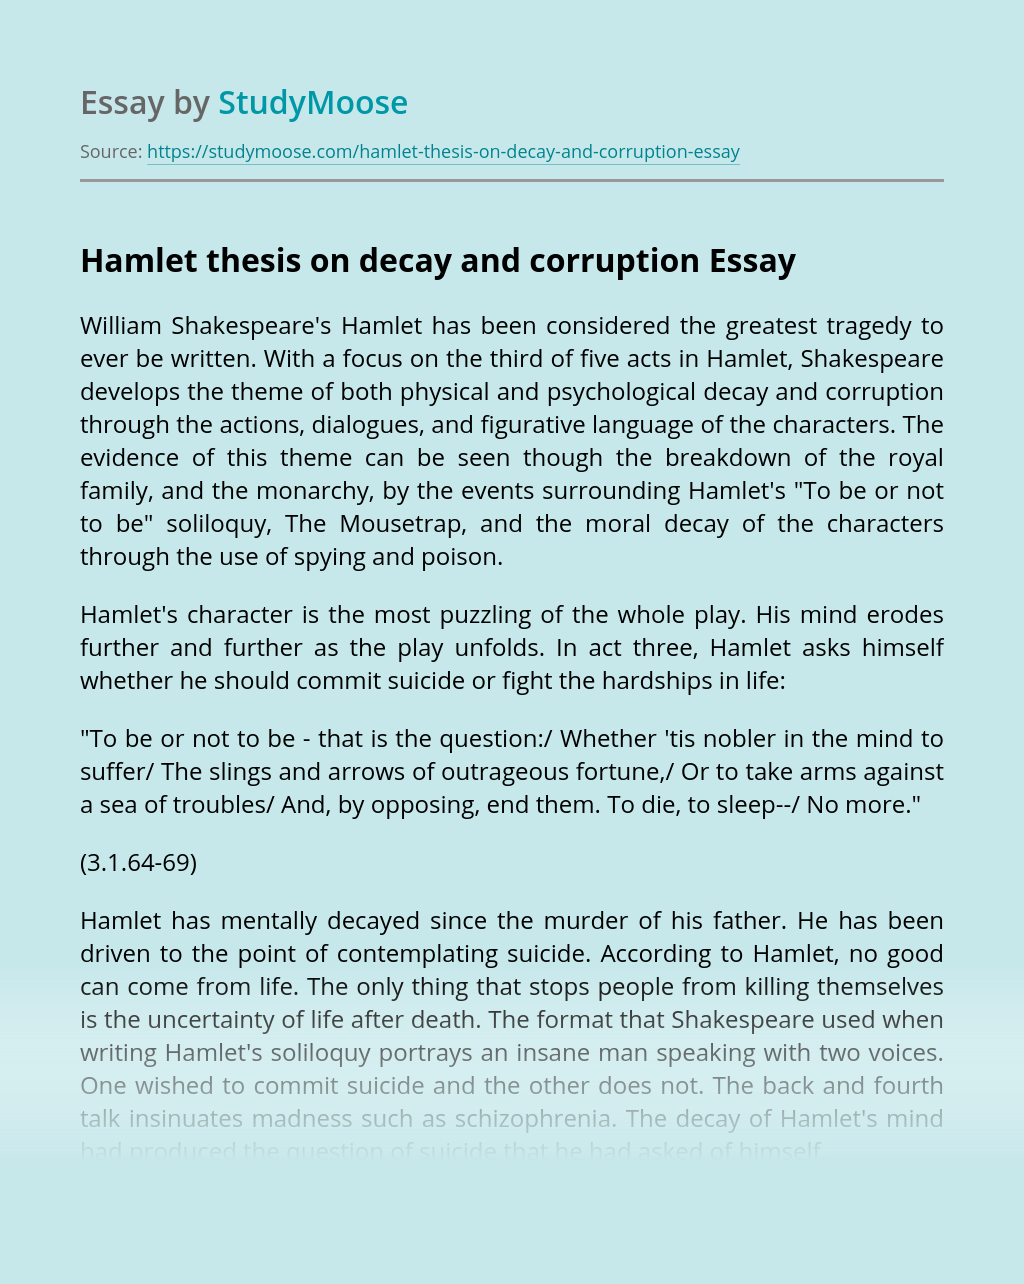 Hamlet thesis on decay and corruption